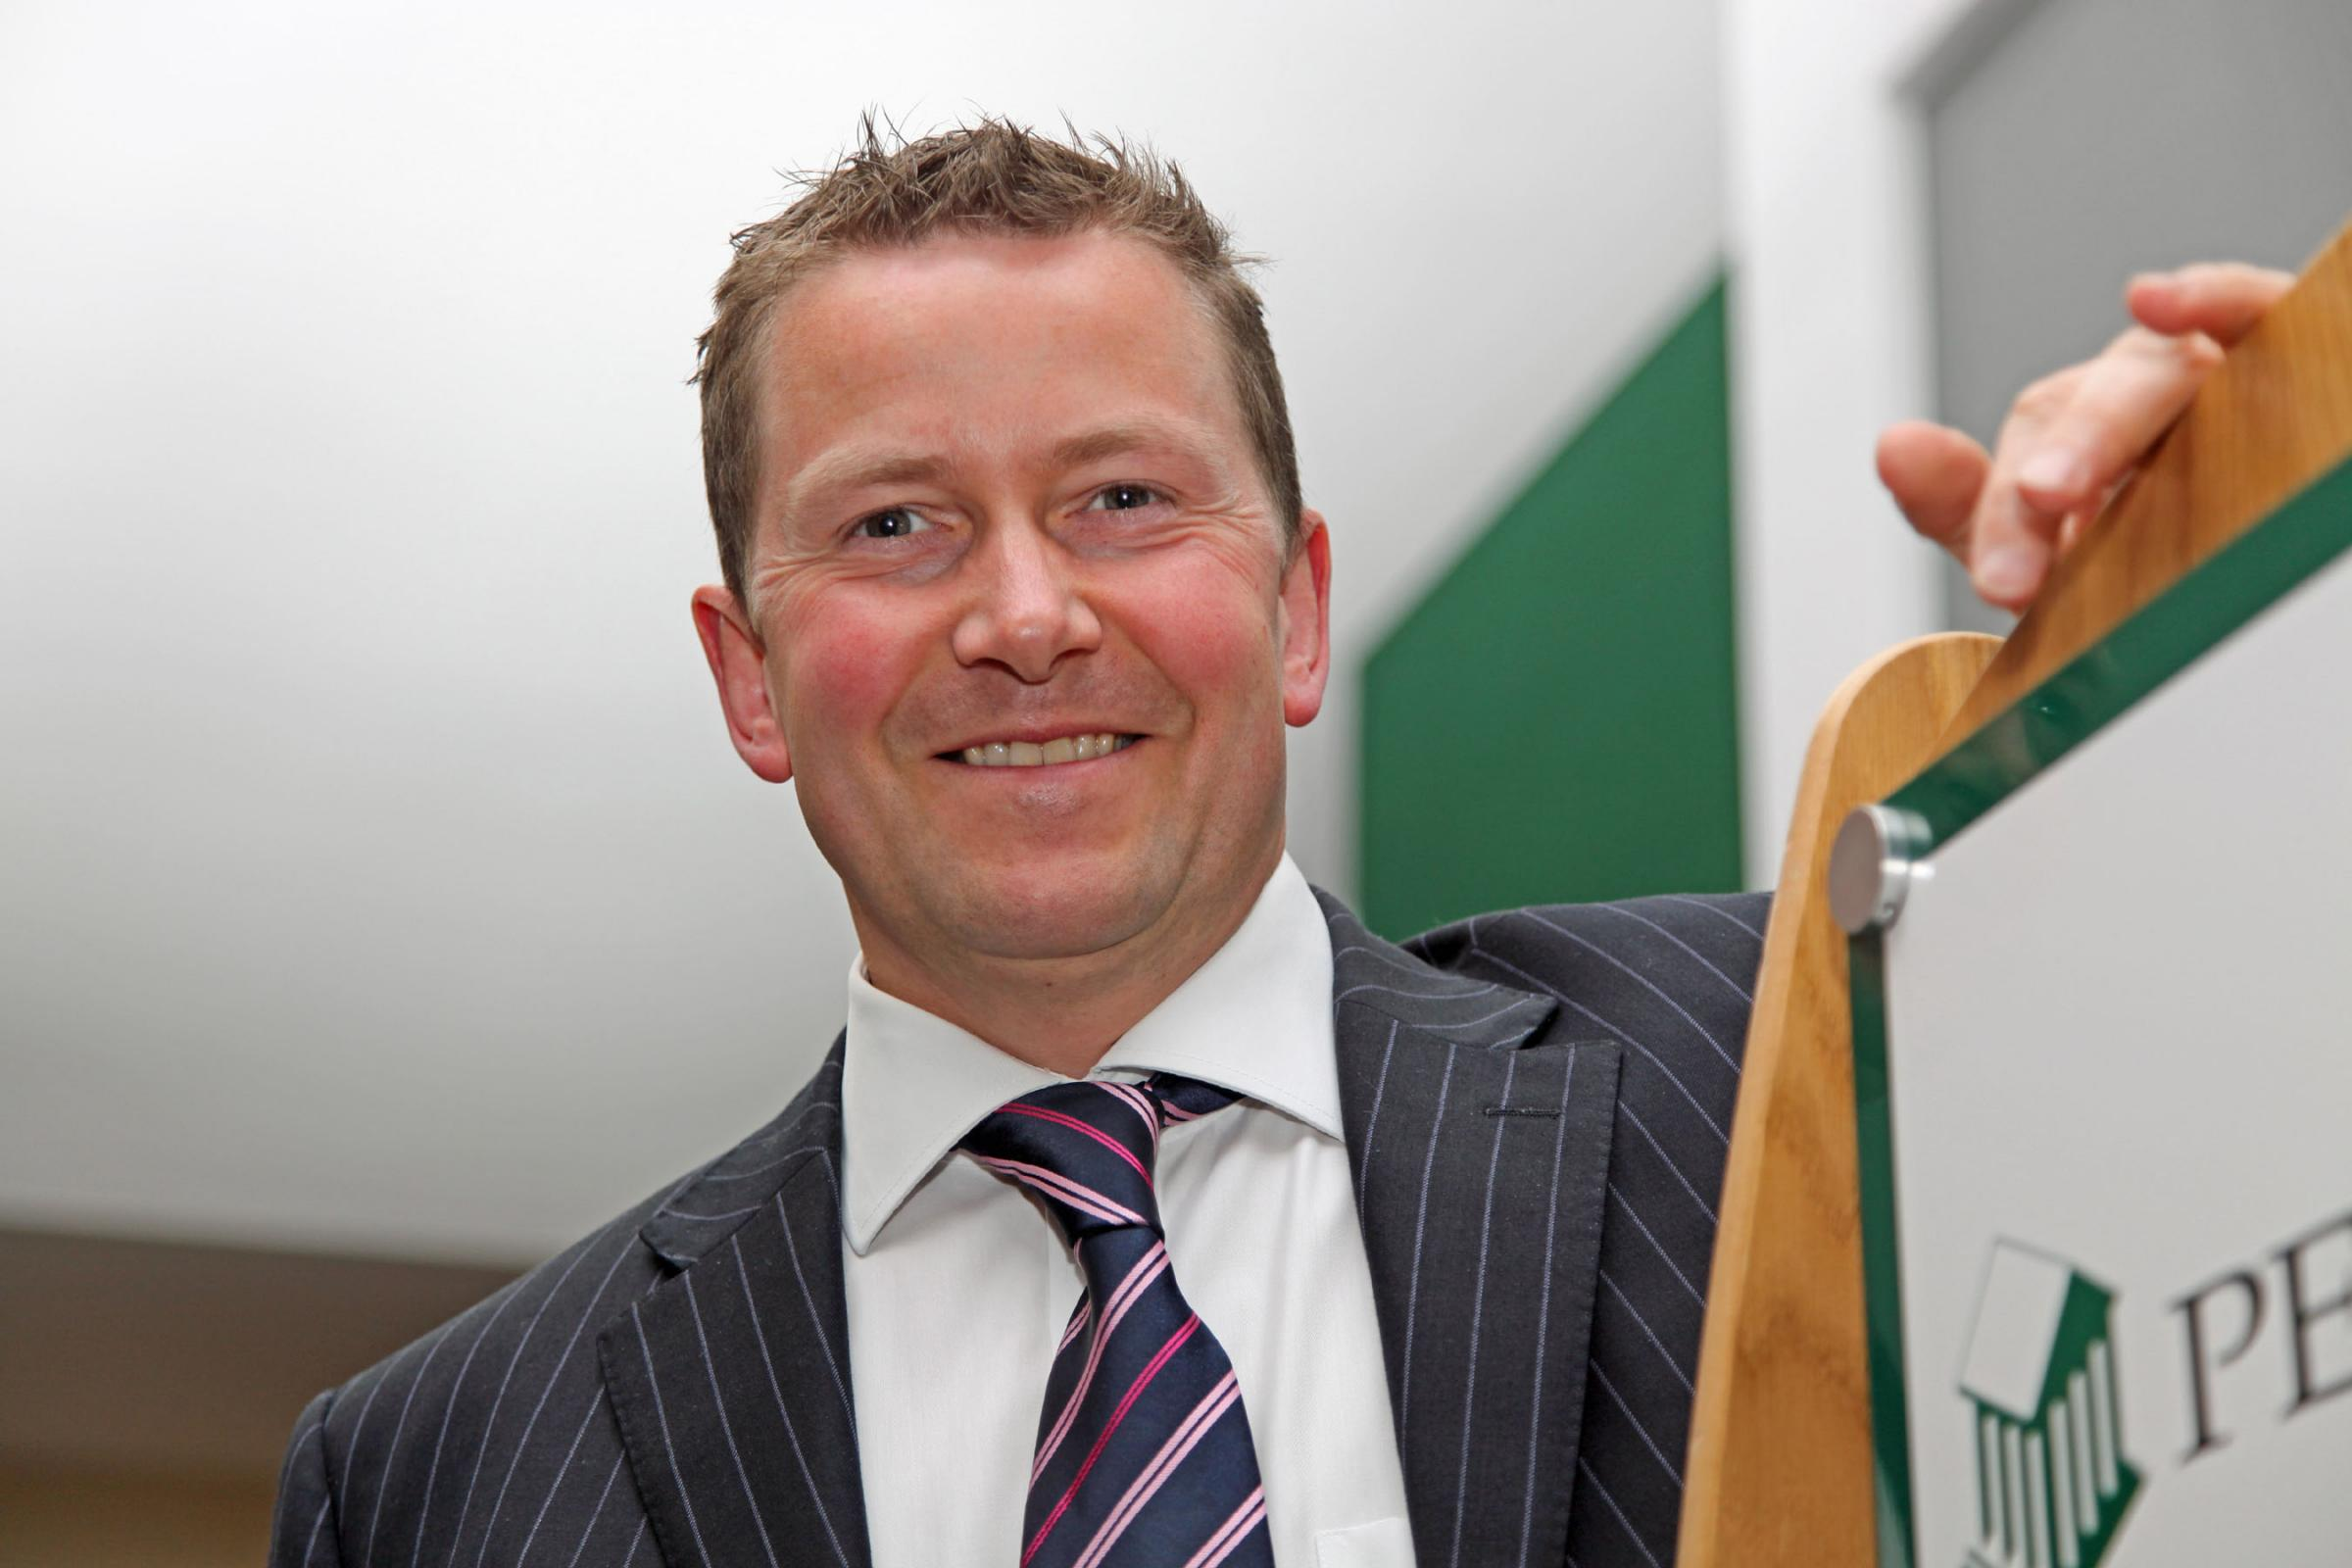 Jeff Fairburn, new chief executive of Persimmon plc..